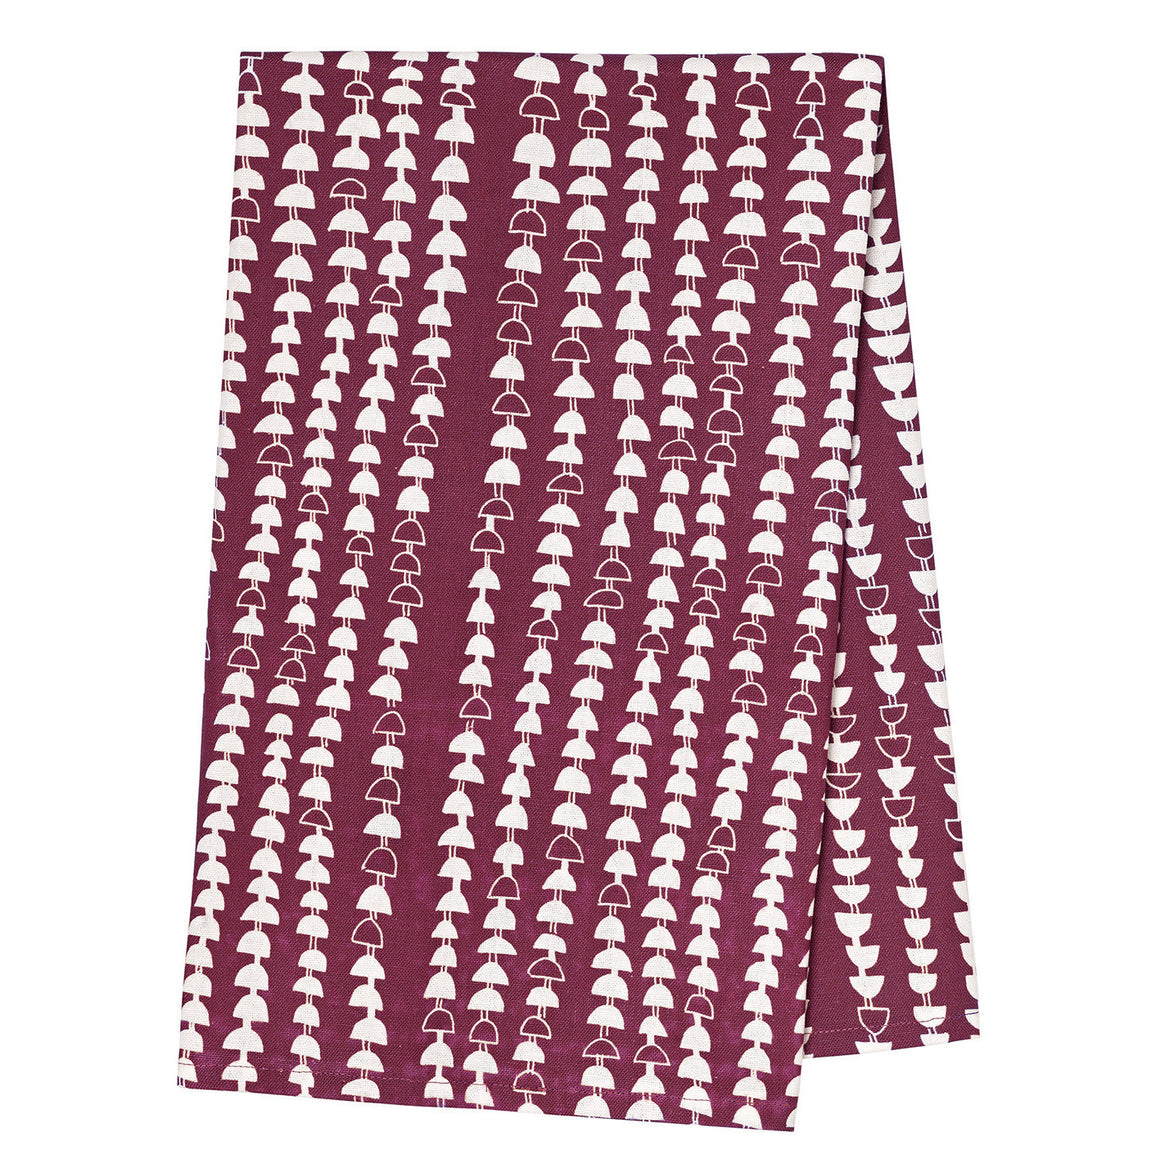 Hopi Tea Towel - Vermilion Red